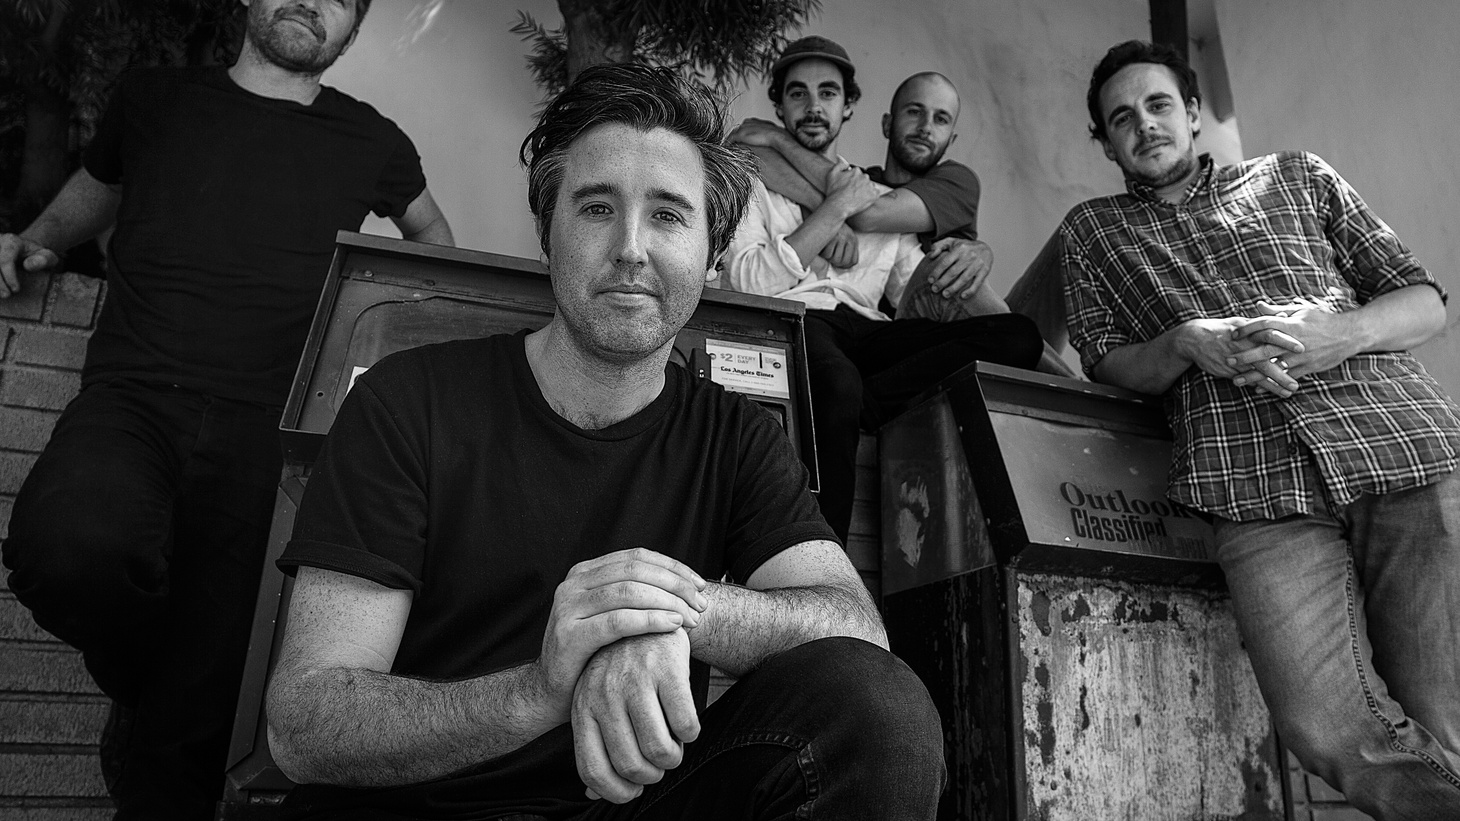 The rollicking guitar pop of Aussie band Rolling Blackouts Coastal Fever captured our attention at SXSW last year, and their recent MBE session fulfilled their promise.